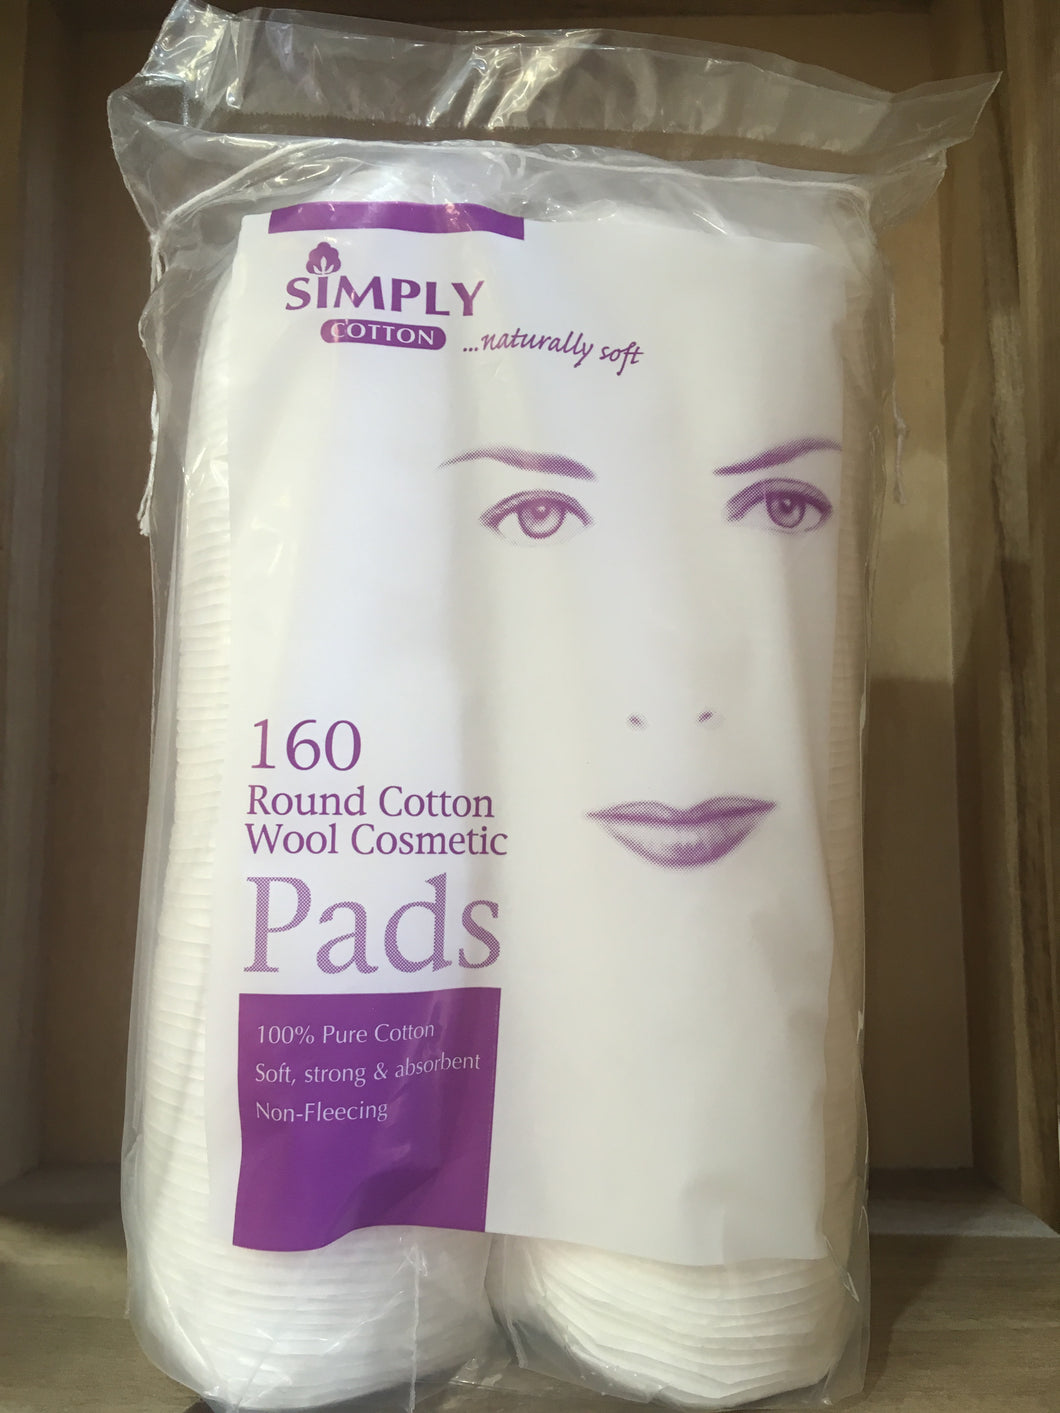 Simply Cotton 160 Round Cotton Wool Cosmetic Pads